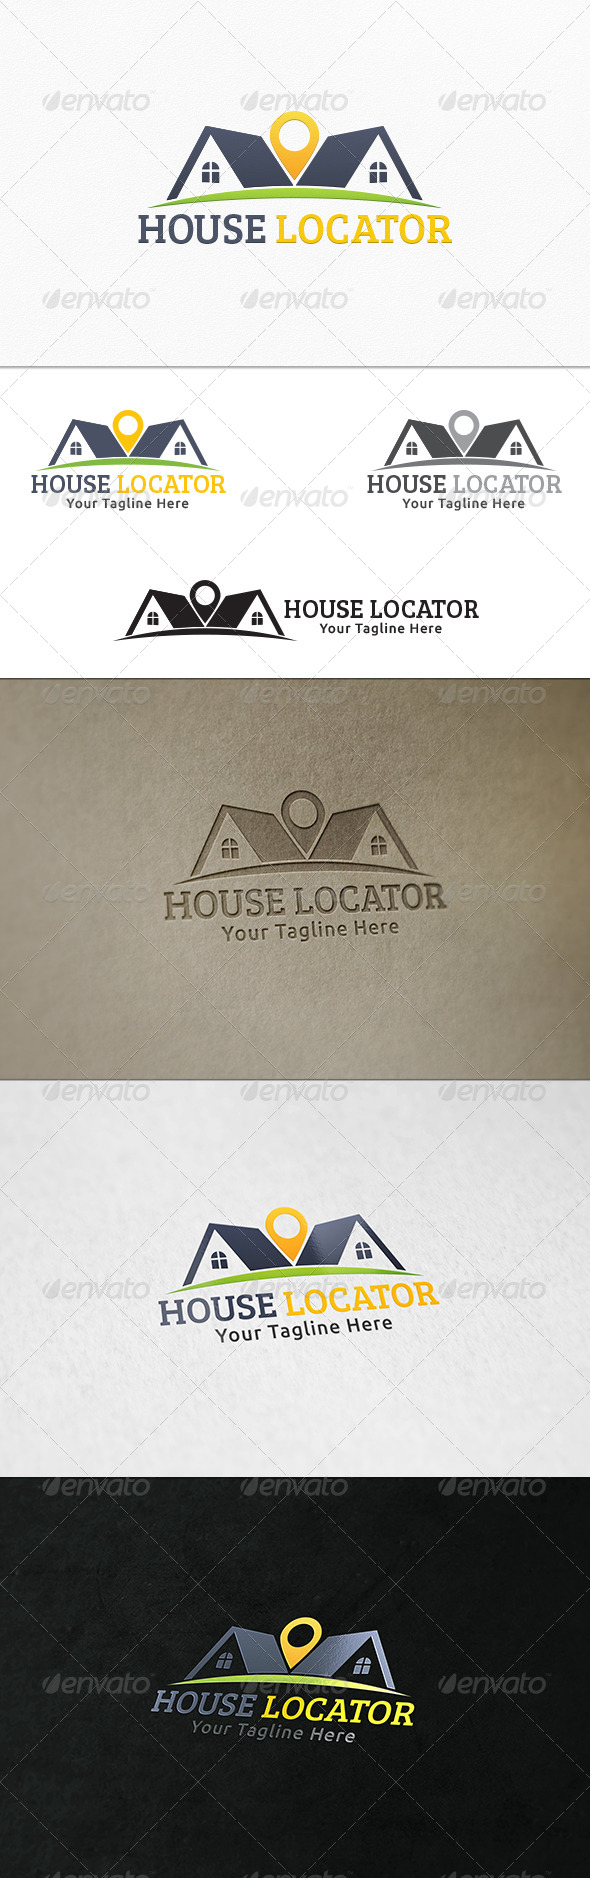 GraphicRiver House Locator Logo Template 8062587